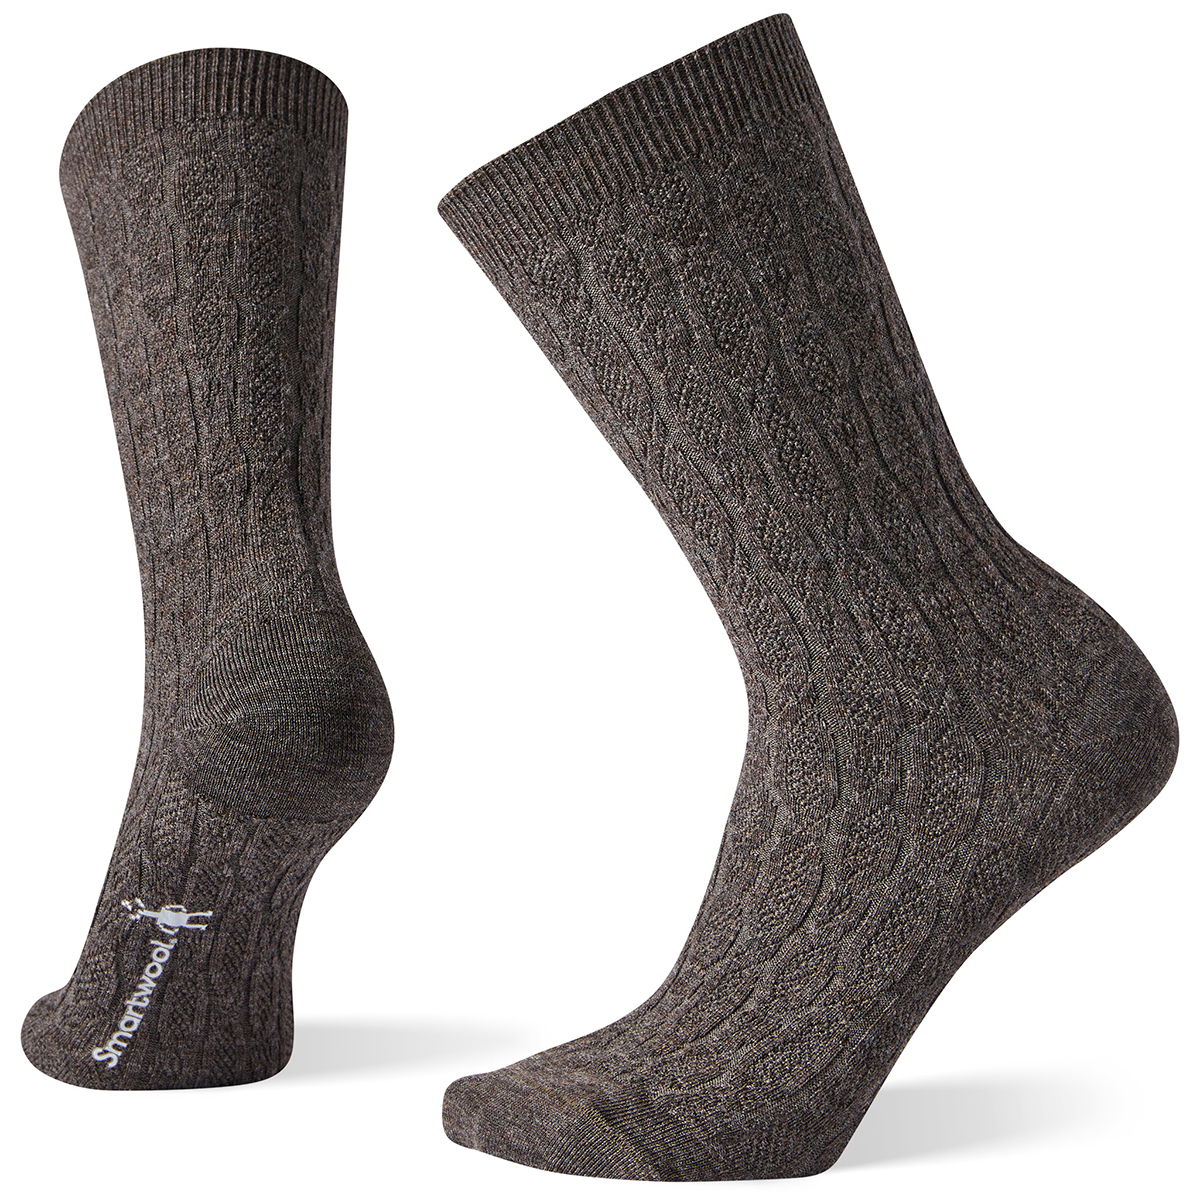 Smartwool Women's Chain Link Cable Crew Socks - Brown, M